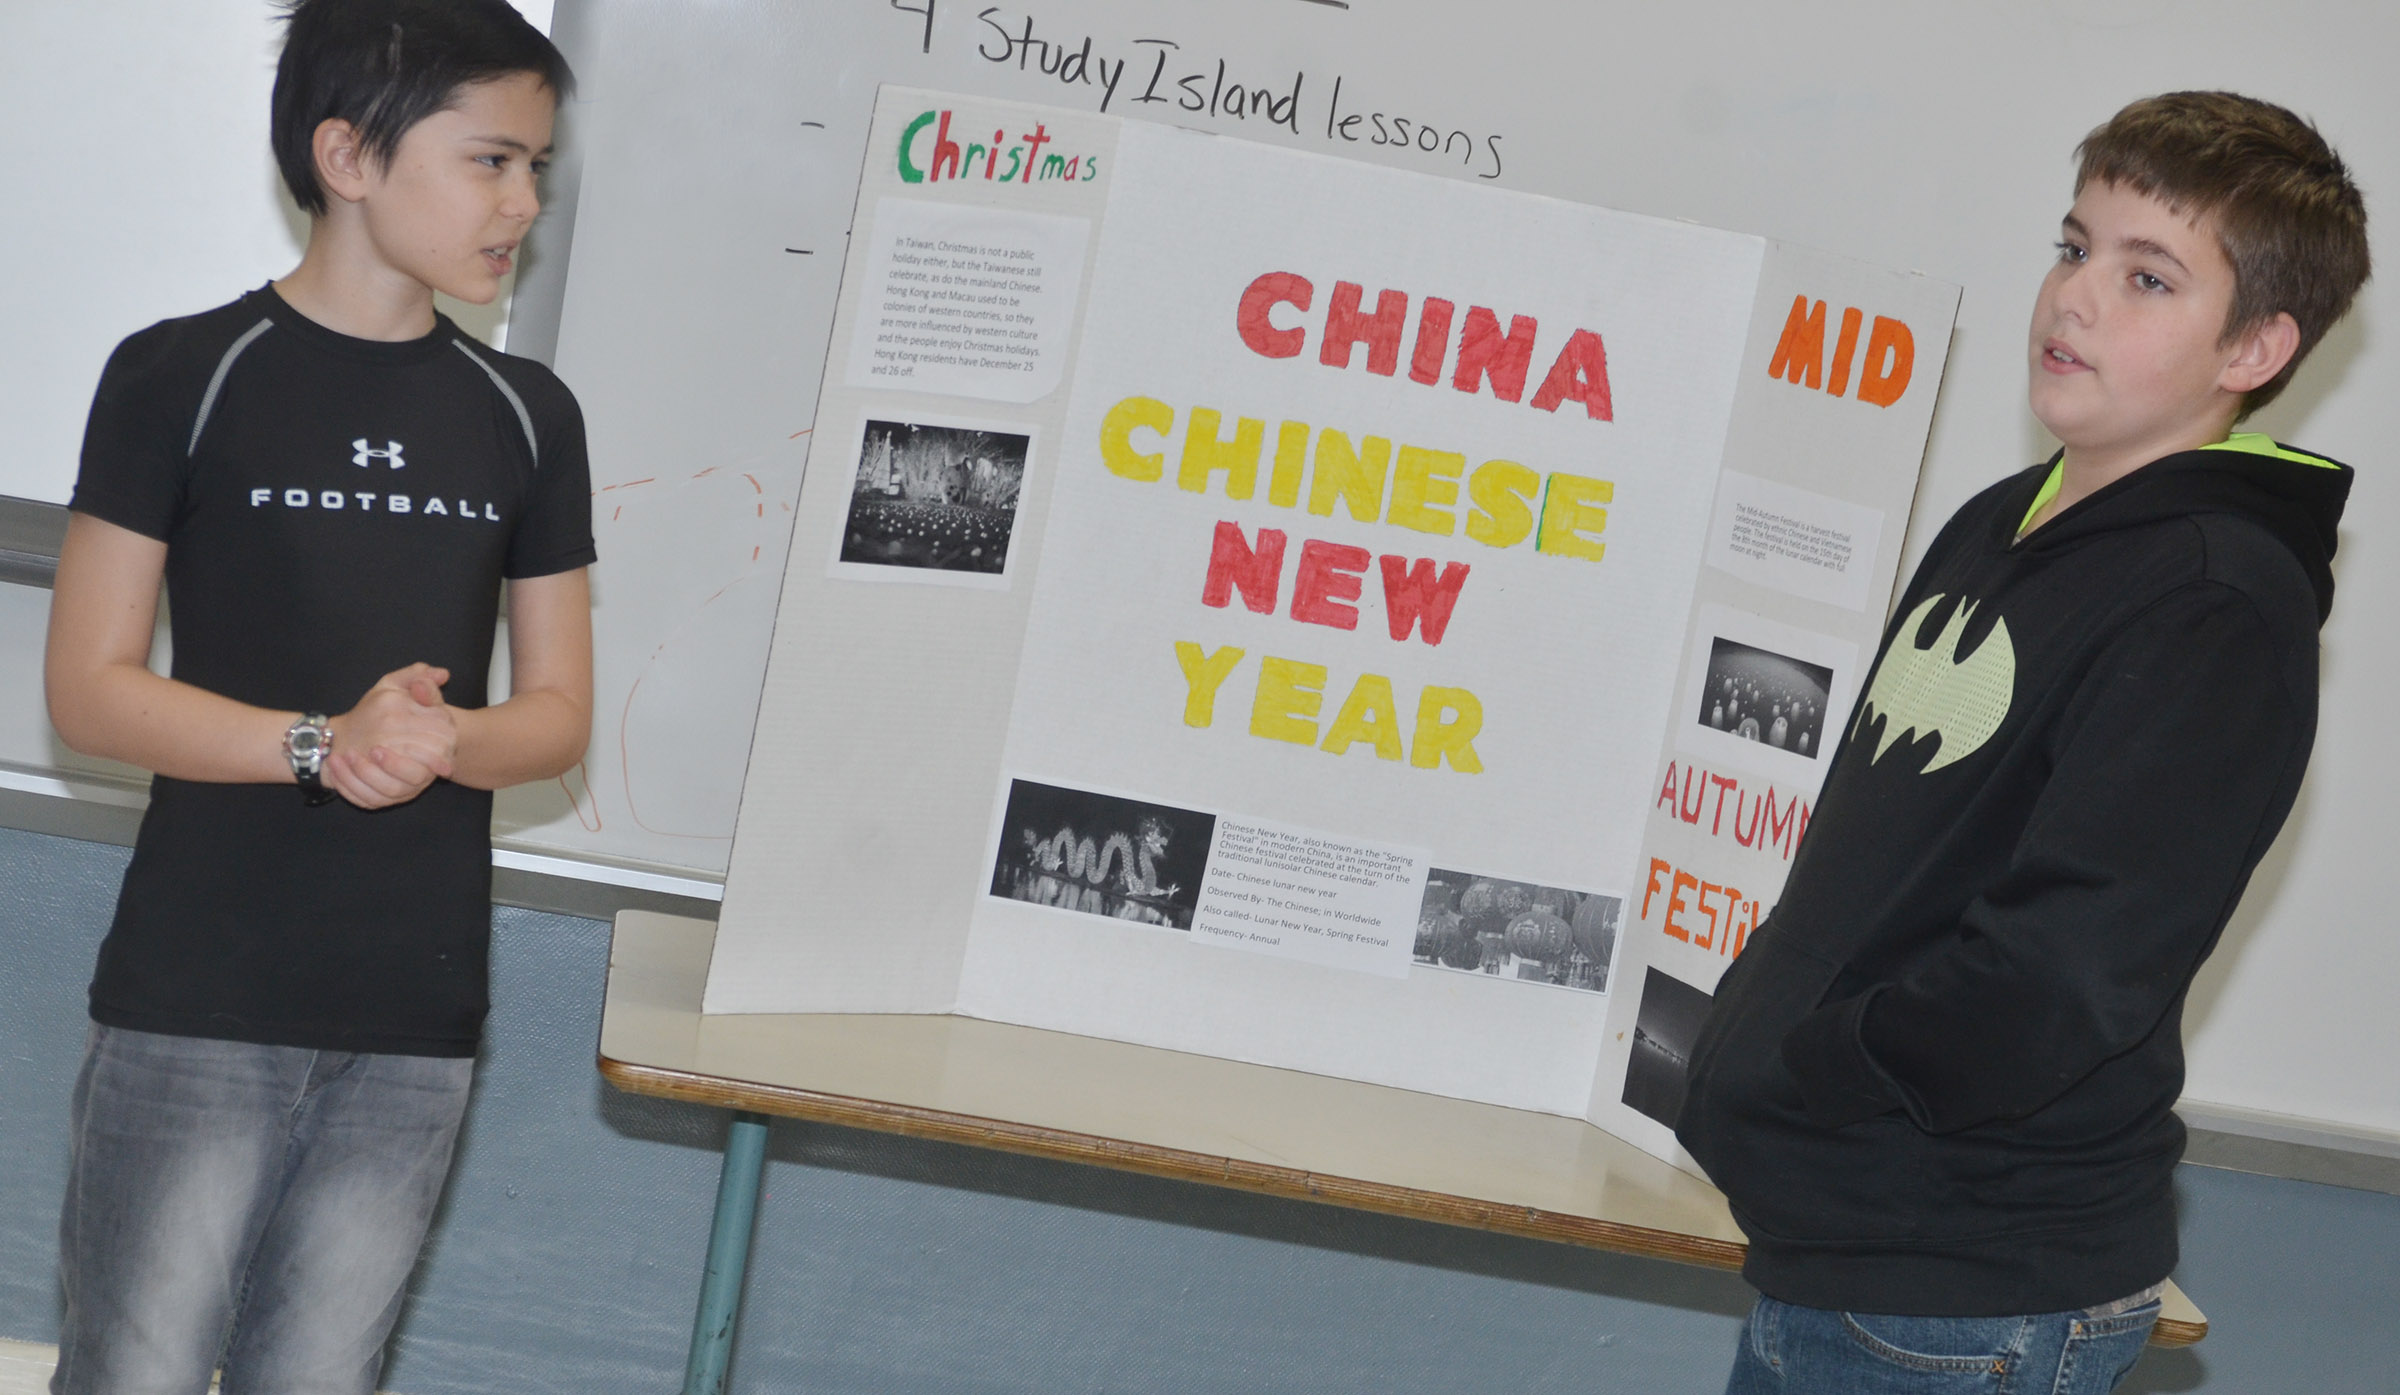 CMS sixth-graders Isaac Billeter, at left, and Ashton Davis present about holiday traditions in China.